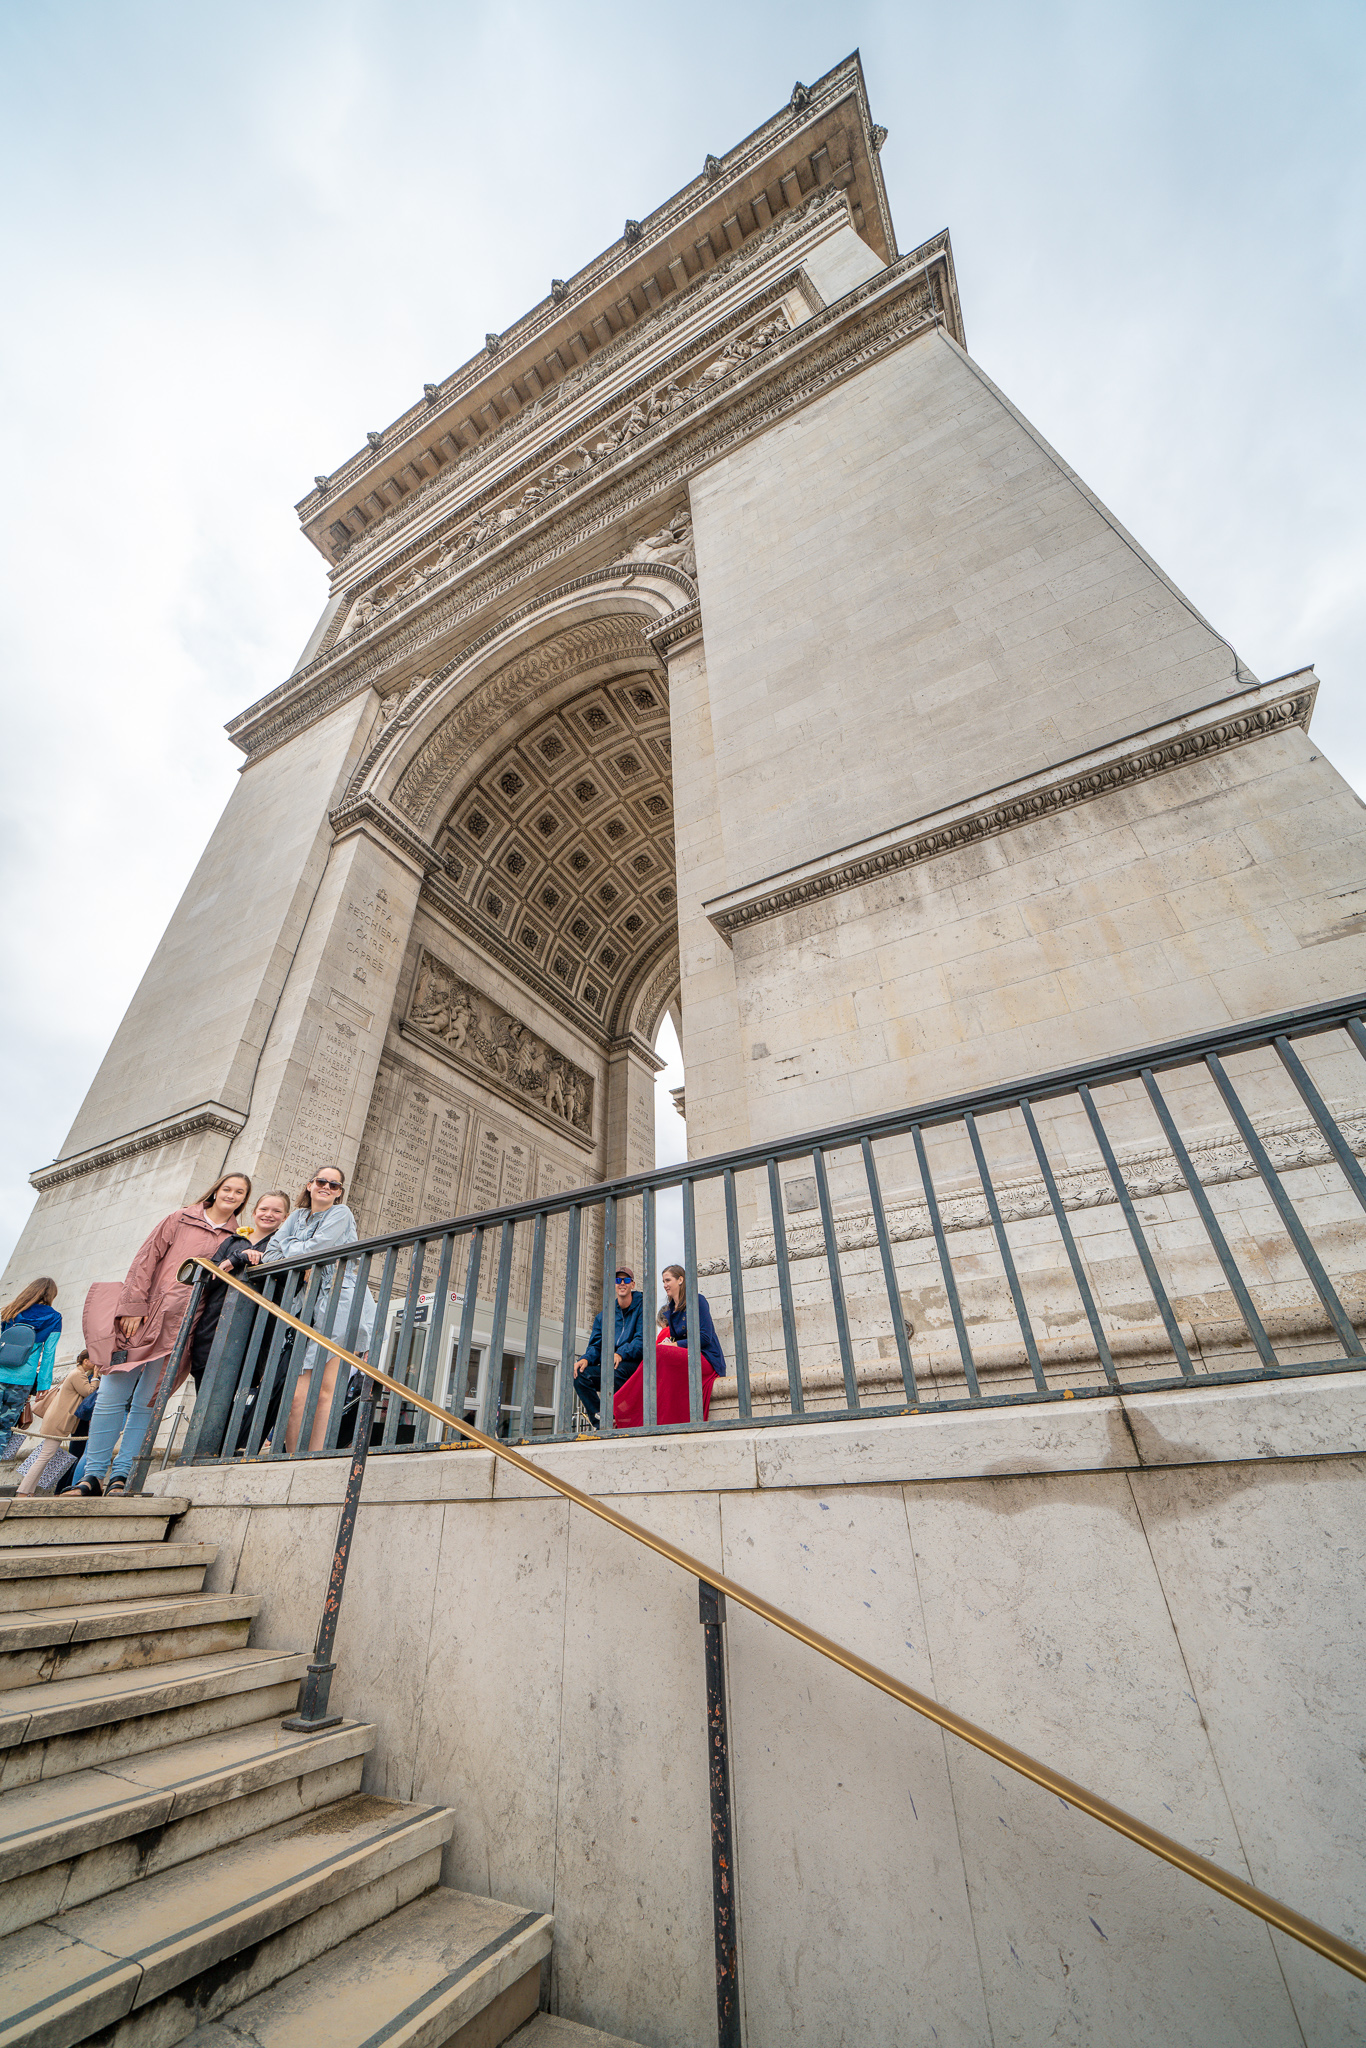 The Arc de Triomphe island